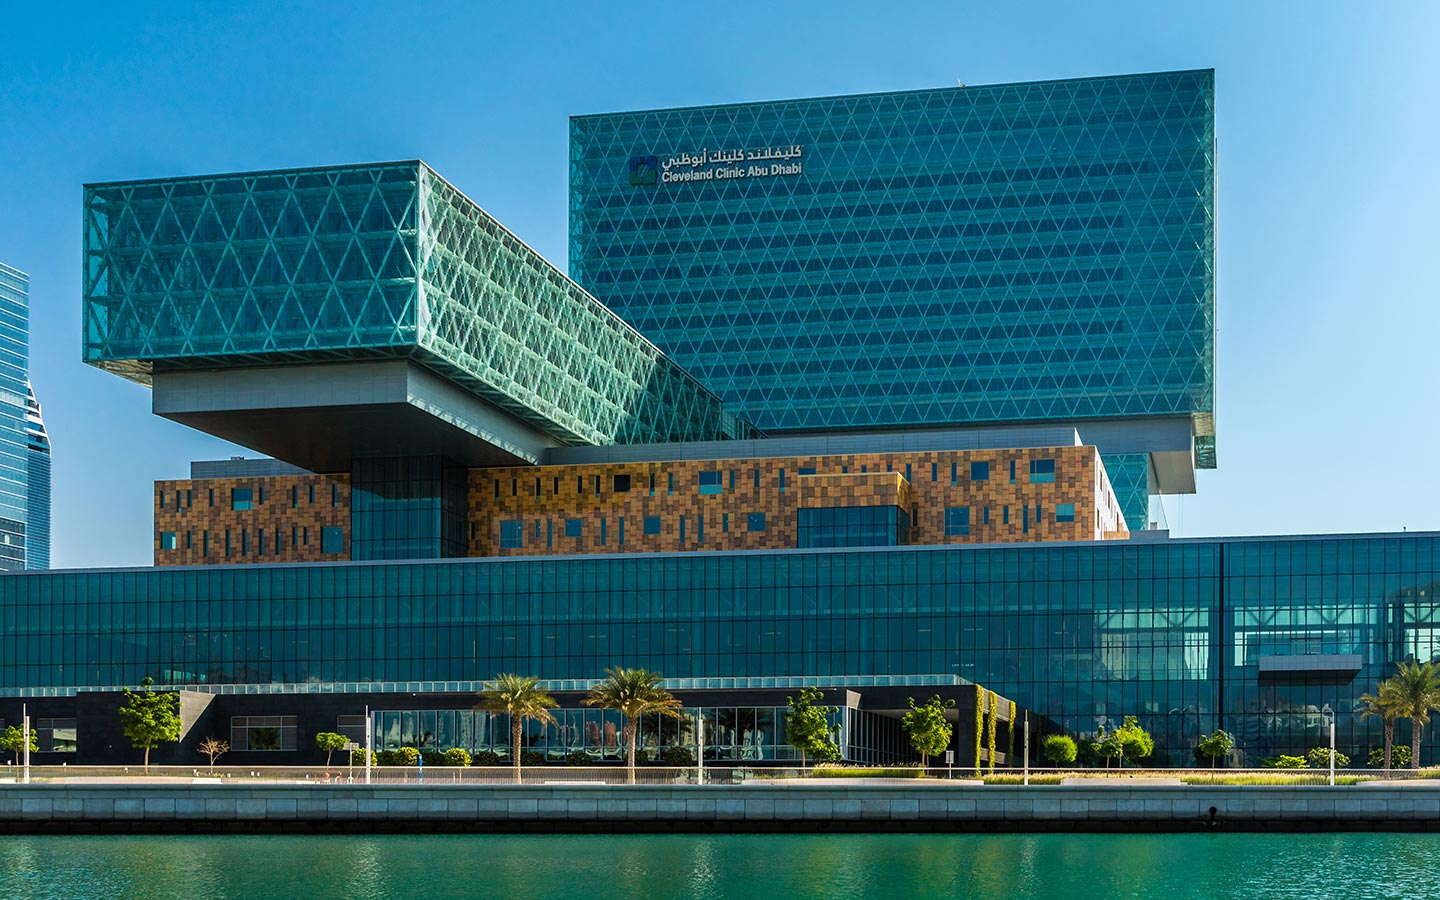 Cleveland Clinic in Abu Dhabi